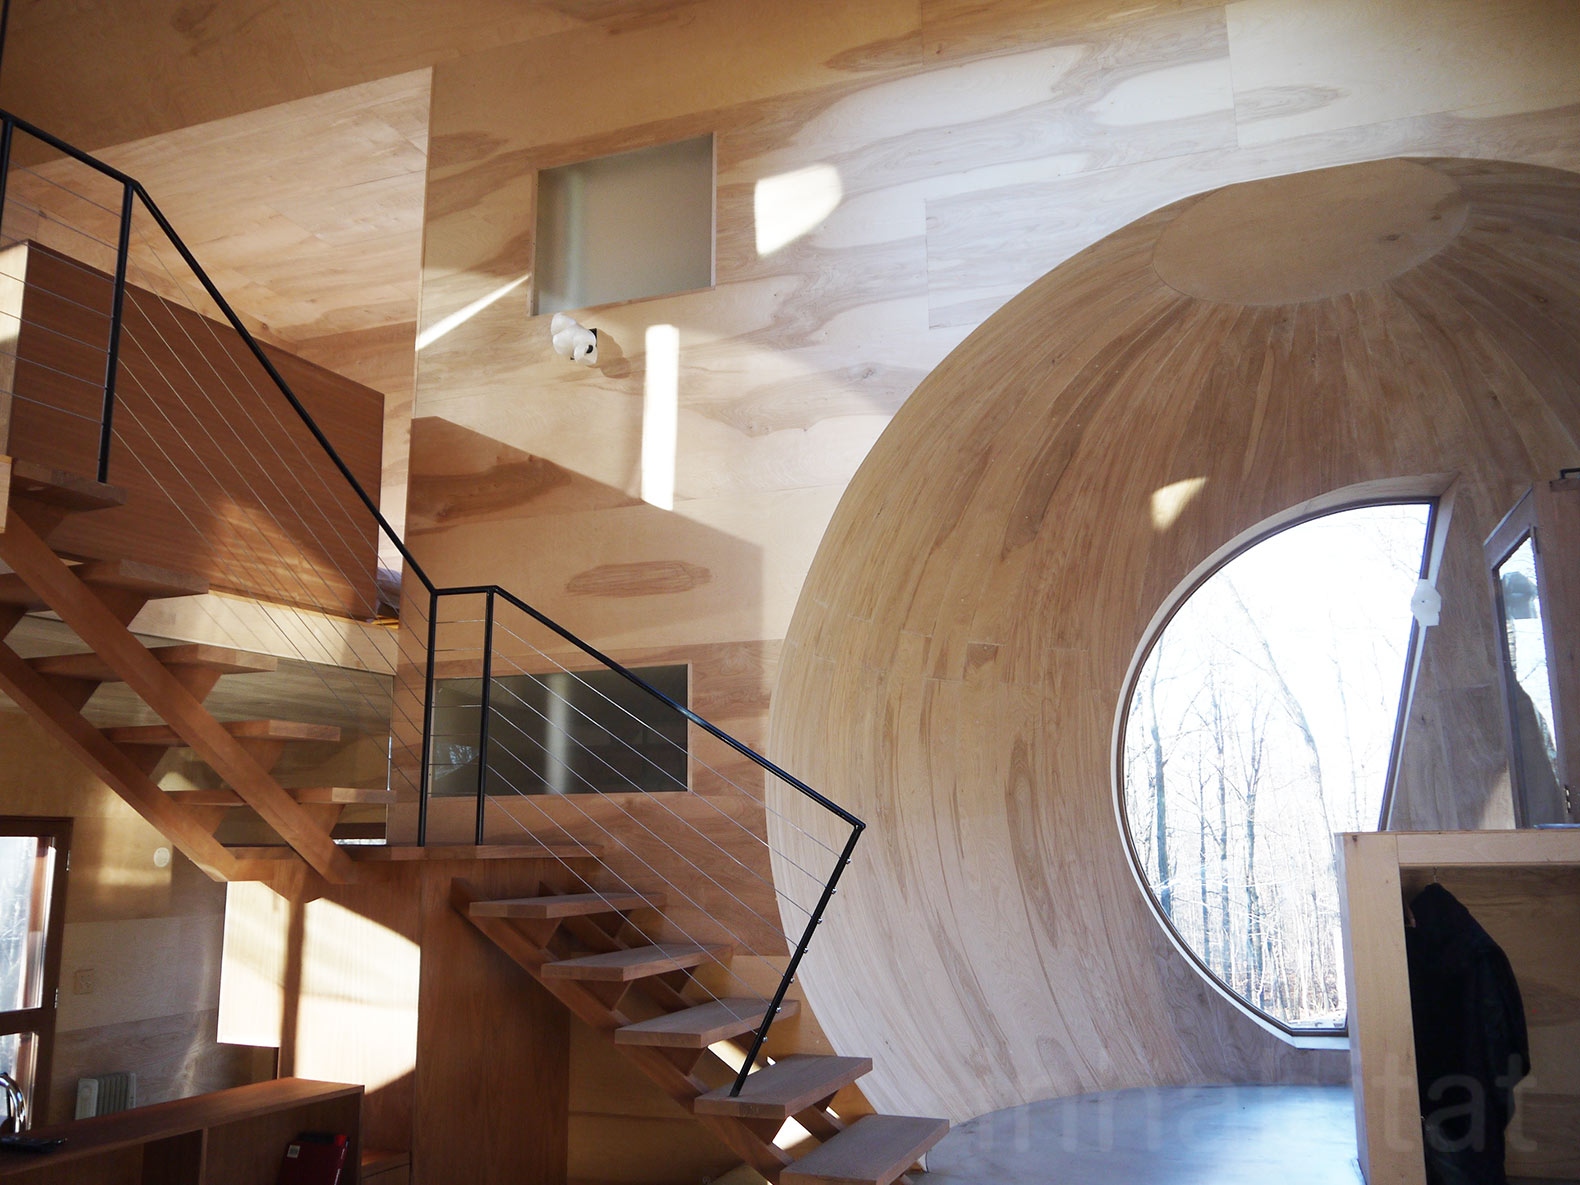 Design house heerlen - Curvaceous Ex Of In House Is A Solar Powered Guest Residence Aligned With The Natural World